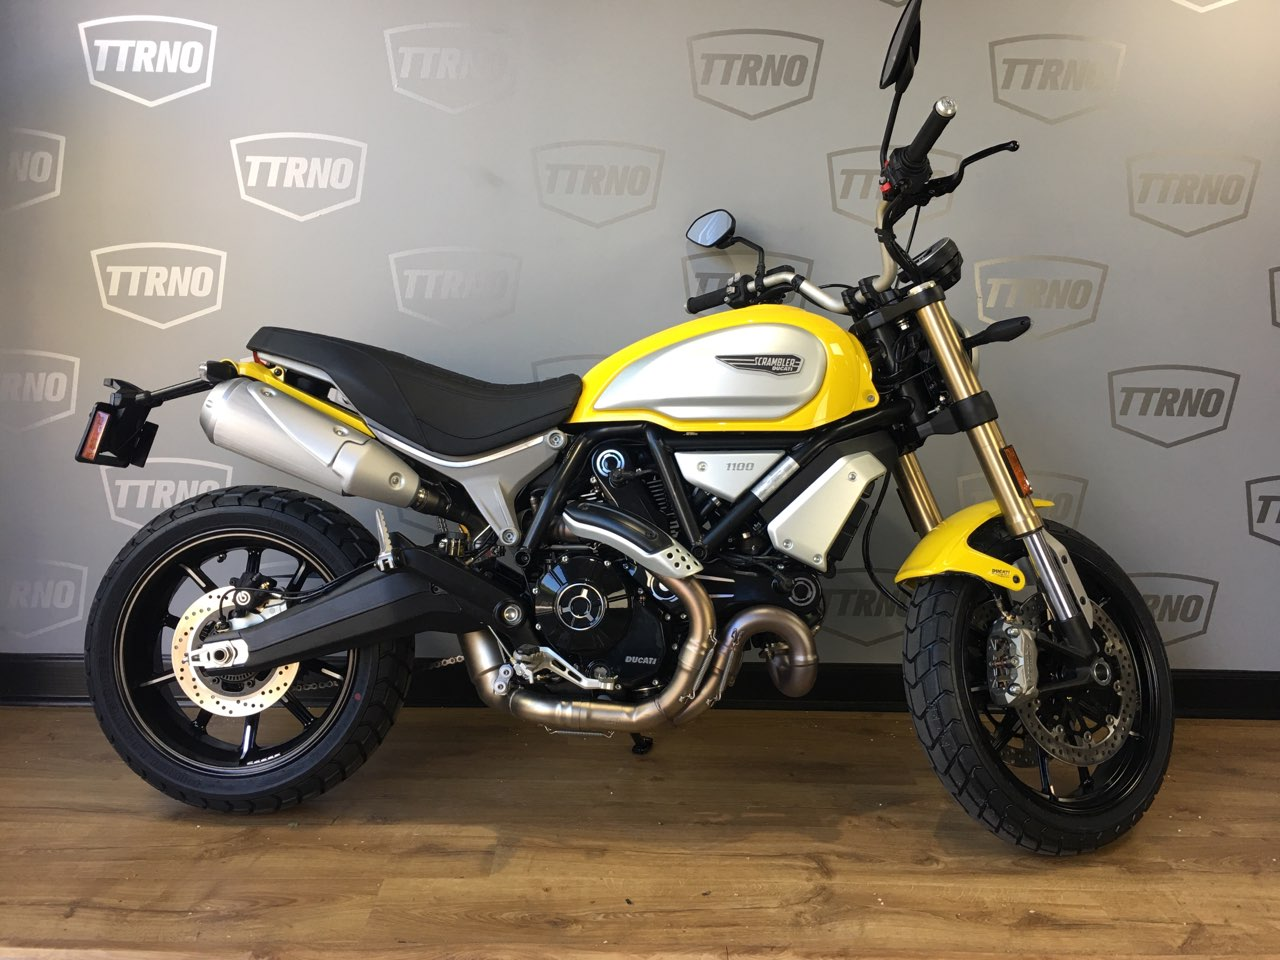 2018 Ducati Scrambler 1100 Yellow The Transportation Revolution